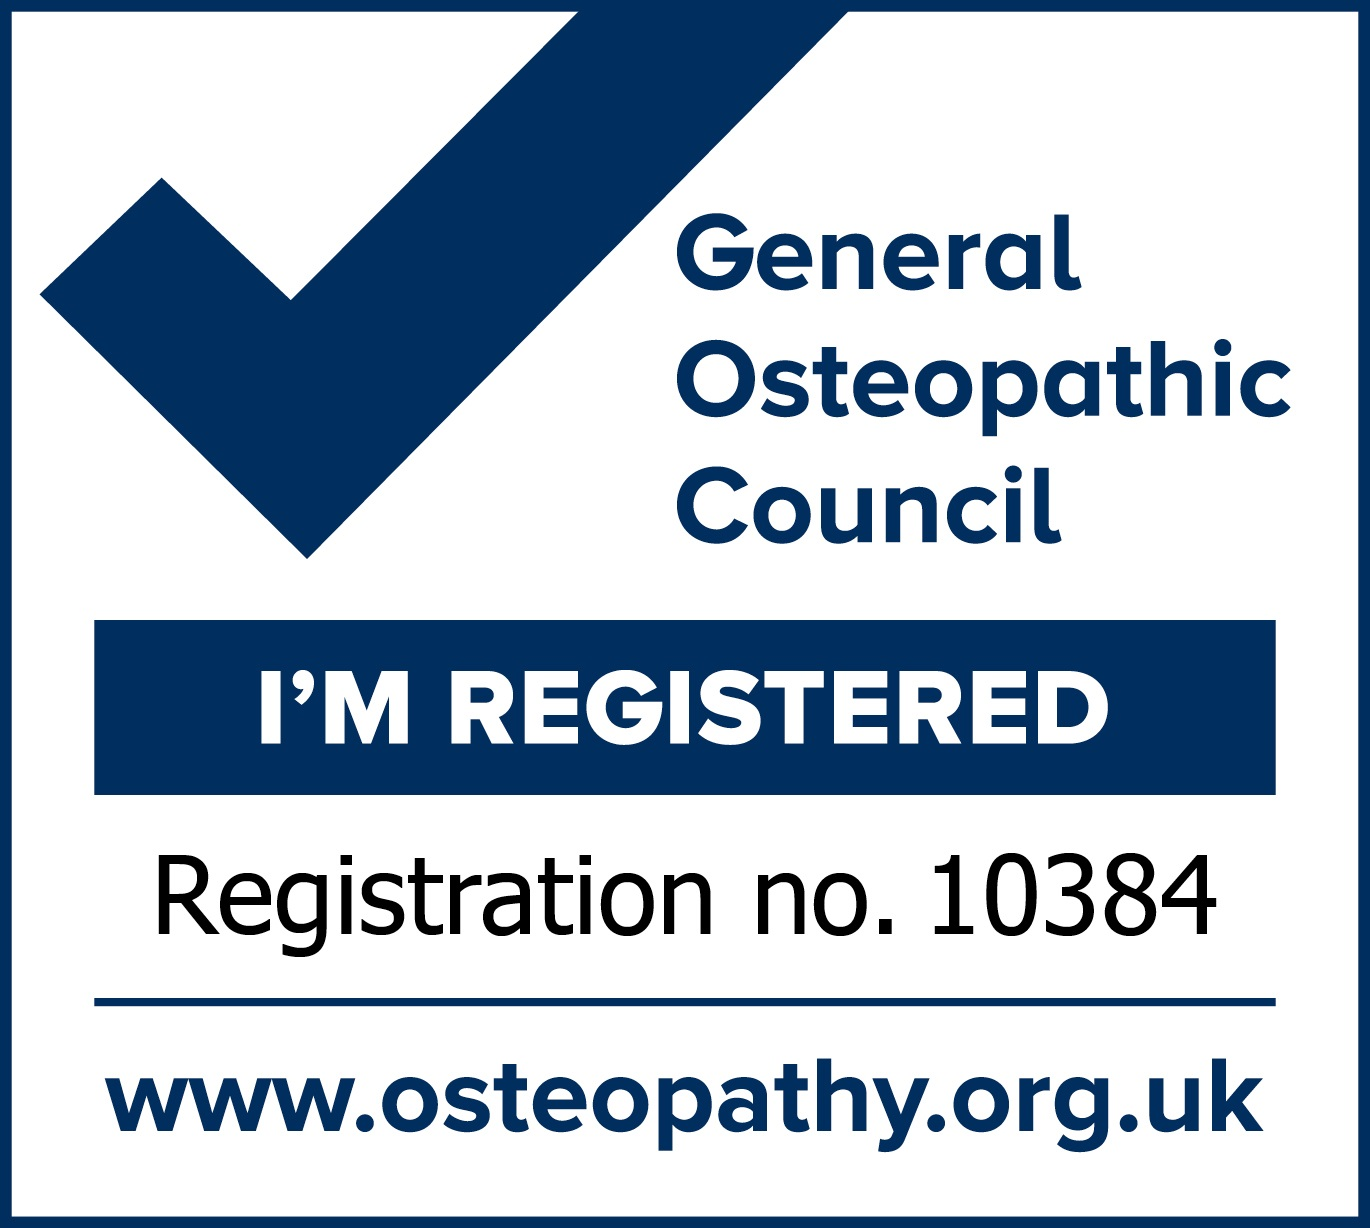 General Osteopathic Council - I'm Registered mark